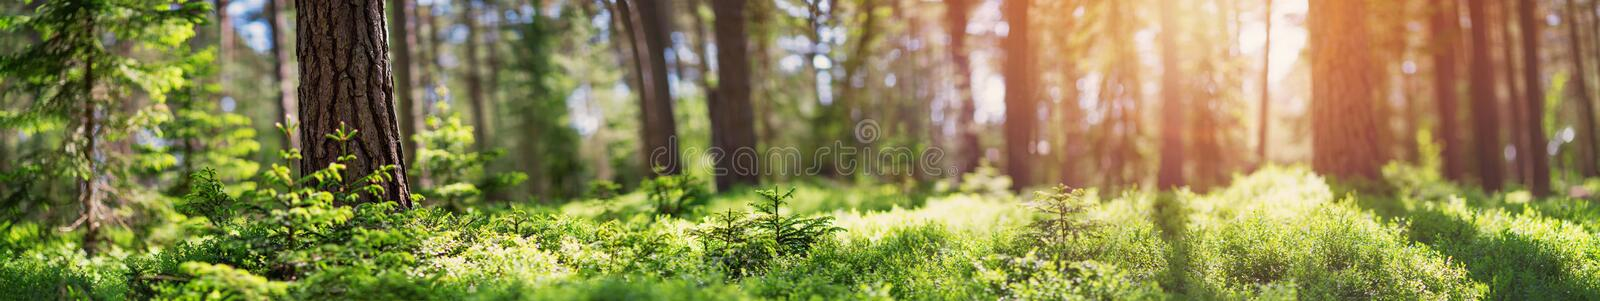 Pine and fir forest panorama royalty free stock image